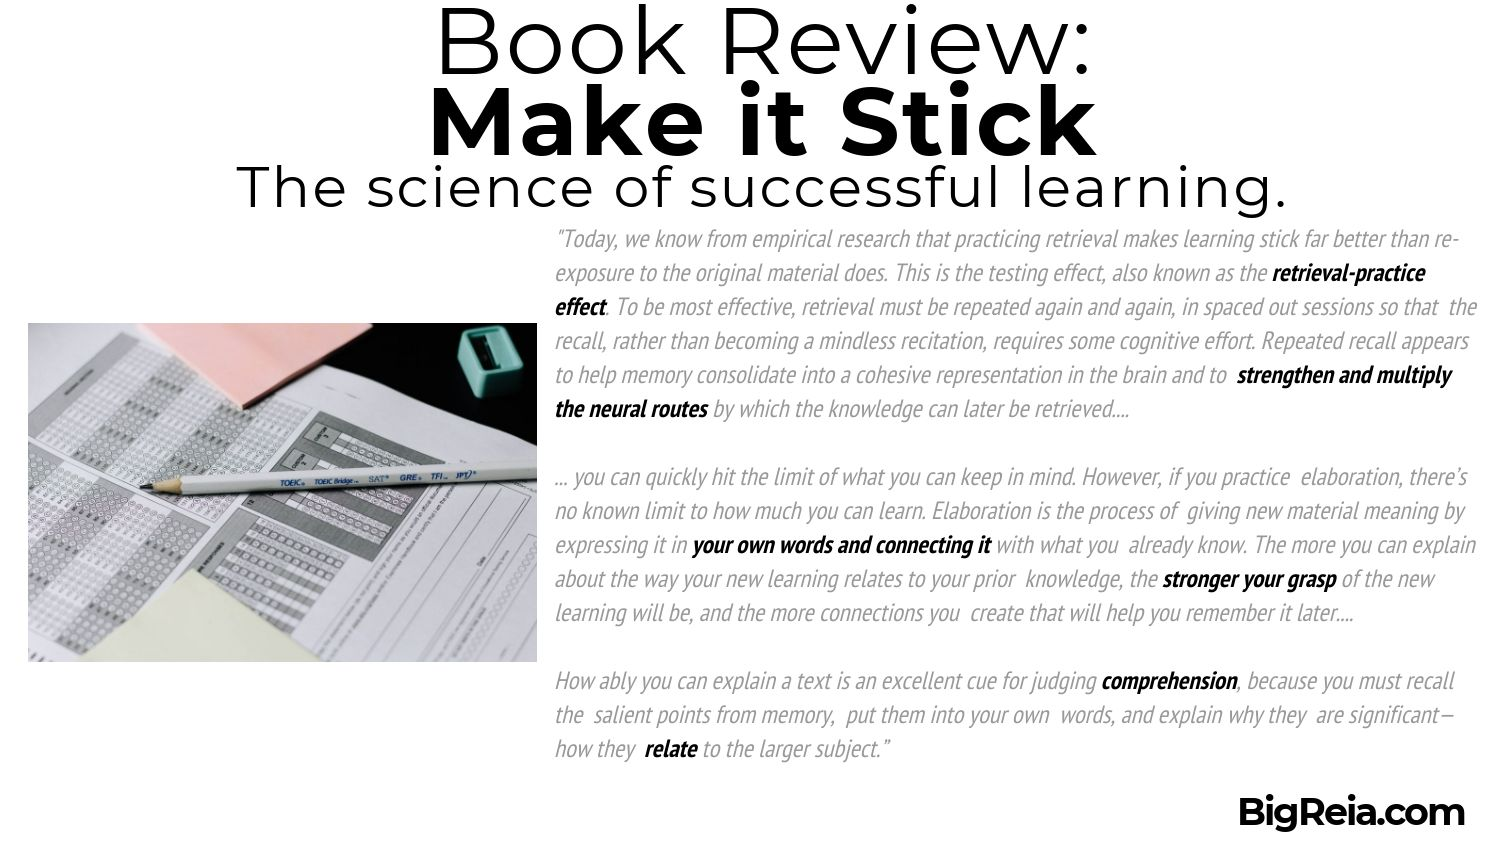 Make it stick book review excerpt 3